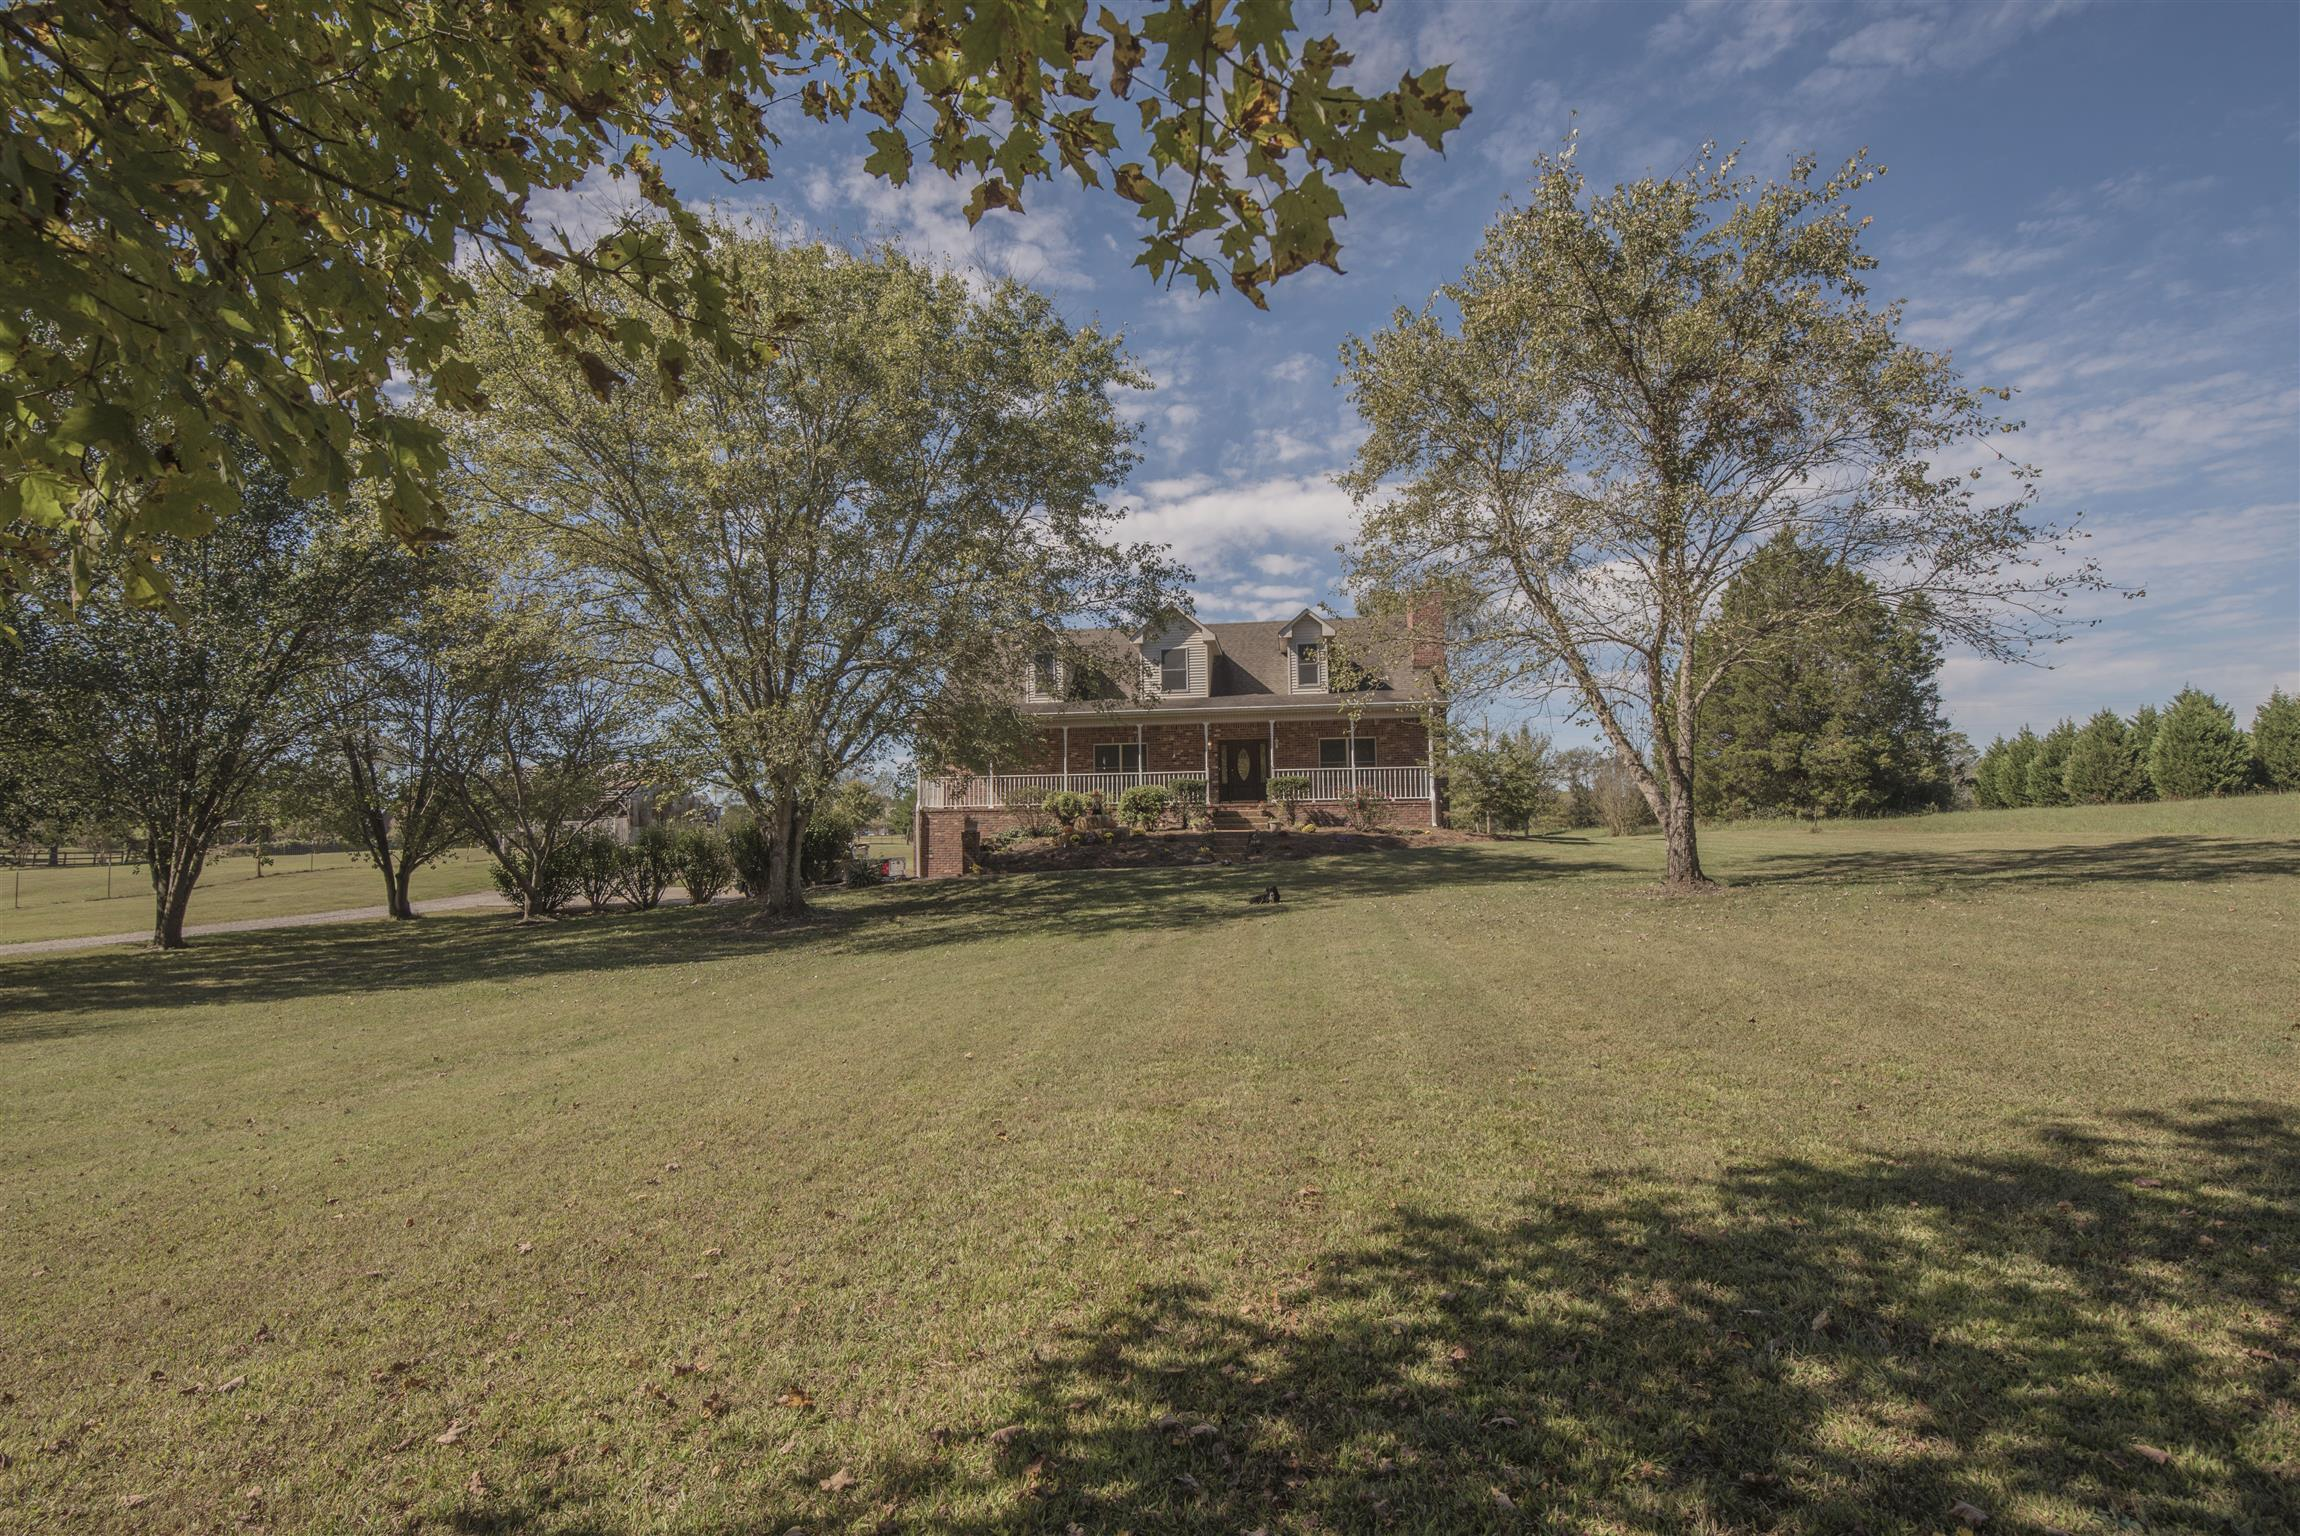 8350 Cairo Bend Rd, Lebanon, TN 37087 - Lebanon, TN real estate listing